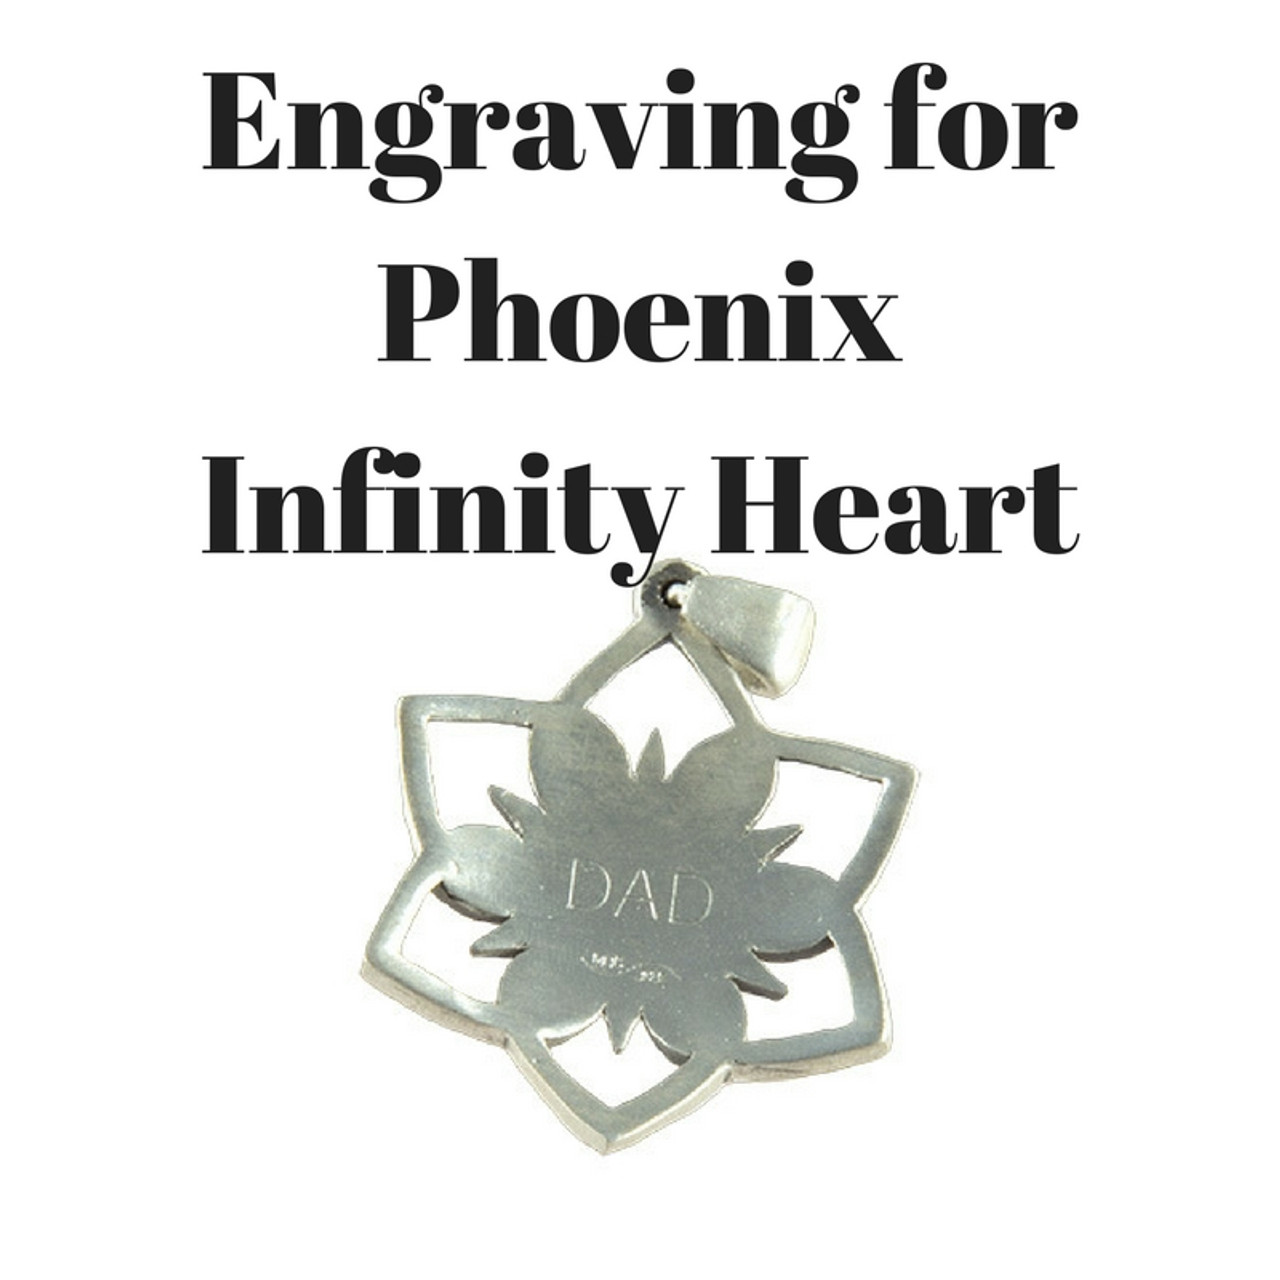 Engraving for Phoenix Infinity Heart